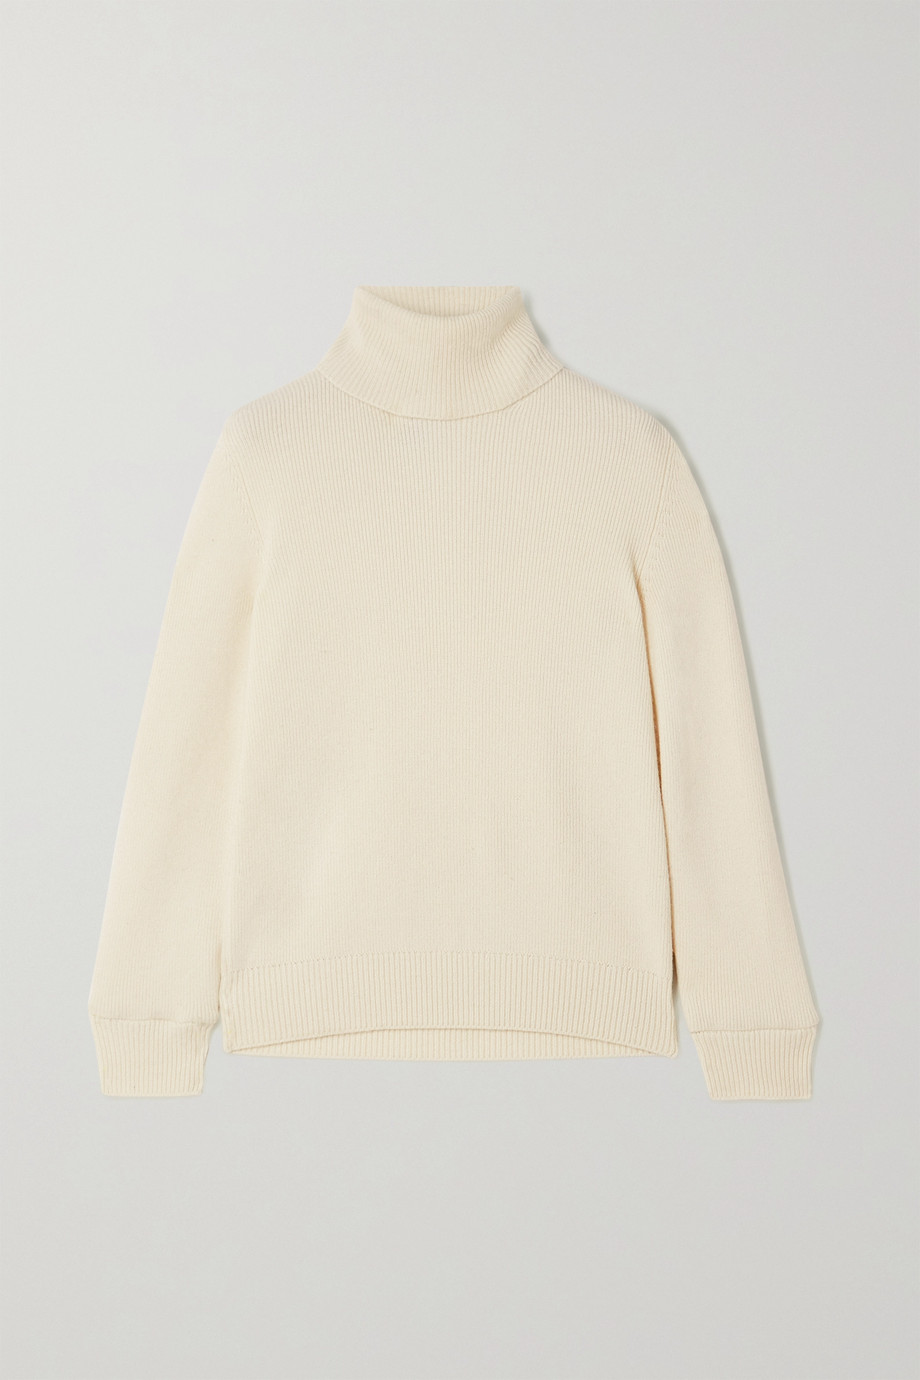 SAINT LAURENT Ribbed cashmere turtleneck sweater